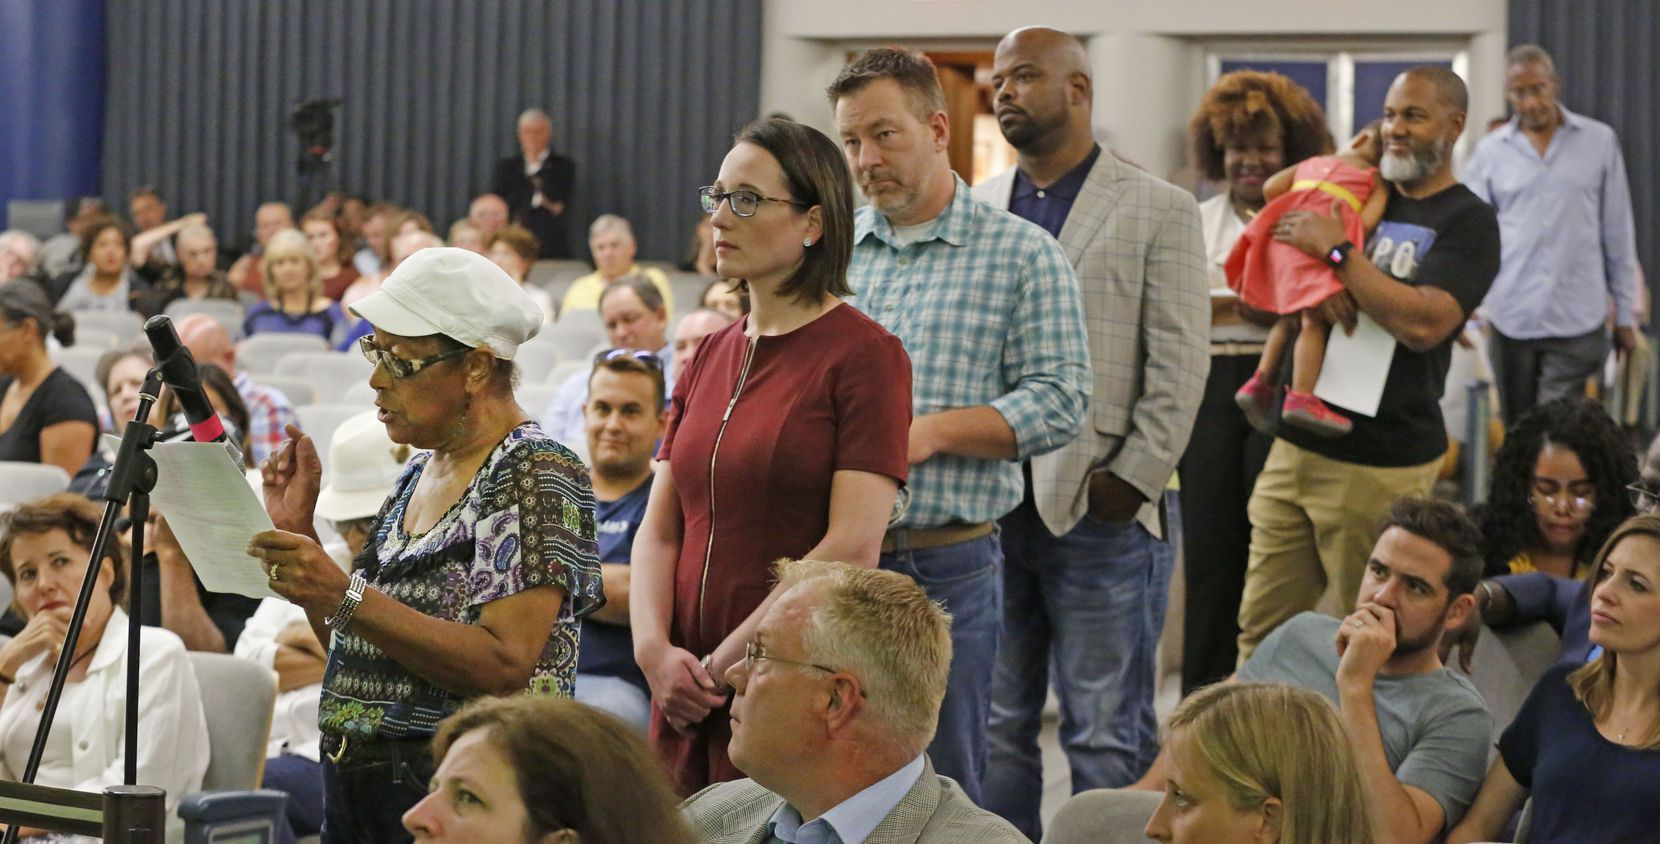 Anna Hill, in her role as president of the Dolphin Heights Neighborhood Association, took her turn at the microphone in August 2018 as the city considered the future of Fair Park.